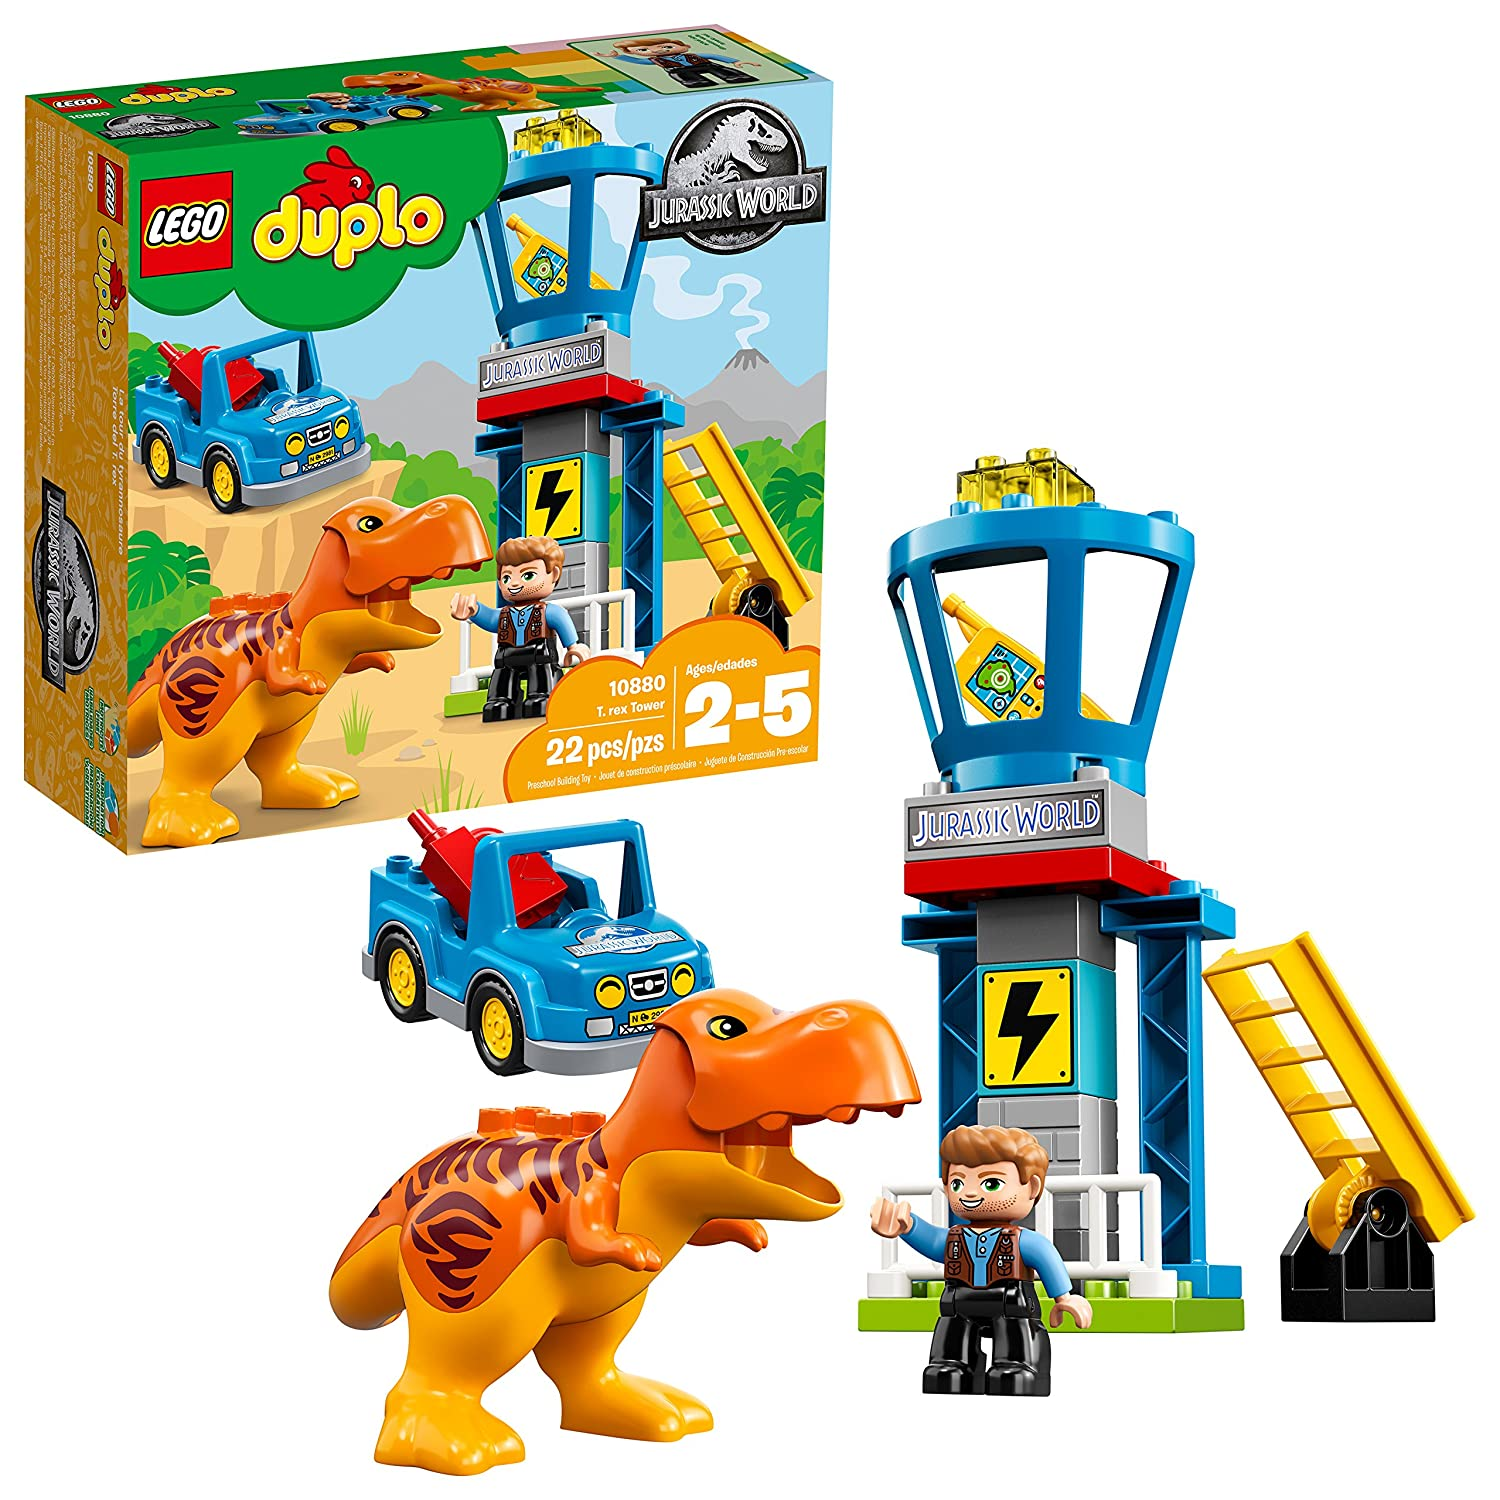 Top 9 Best Lego Duplo Sets Reviews in 2020 8